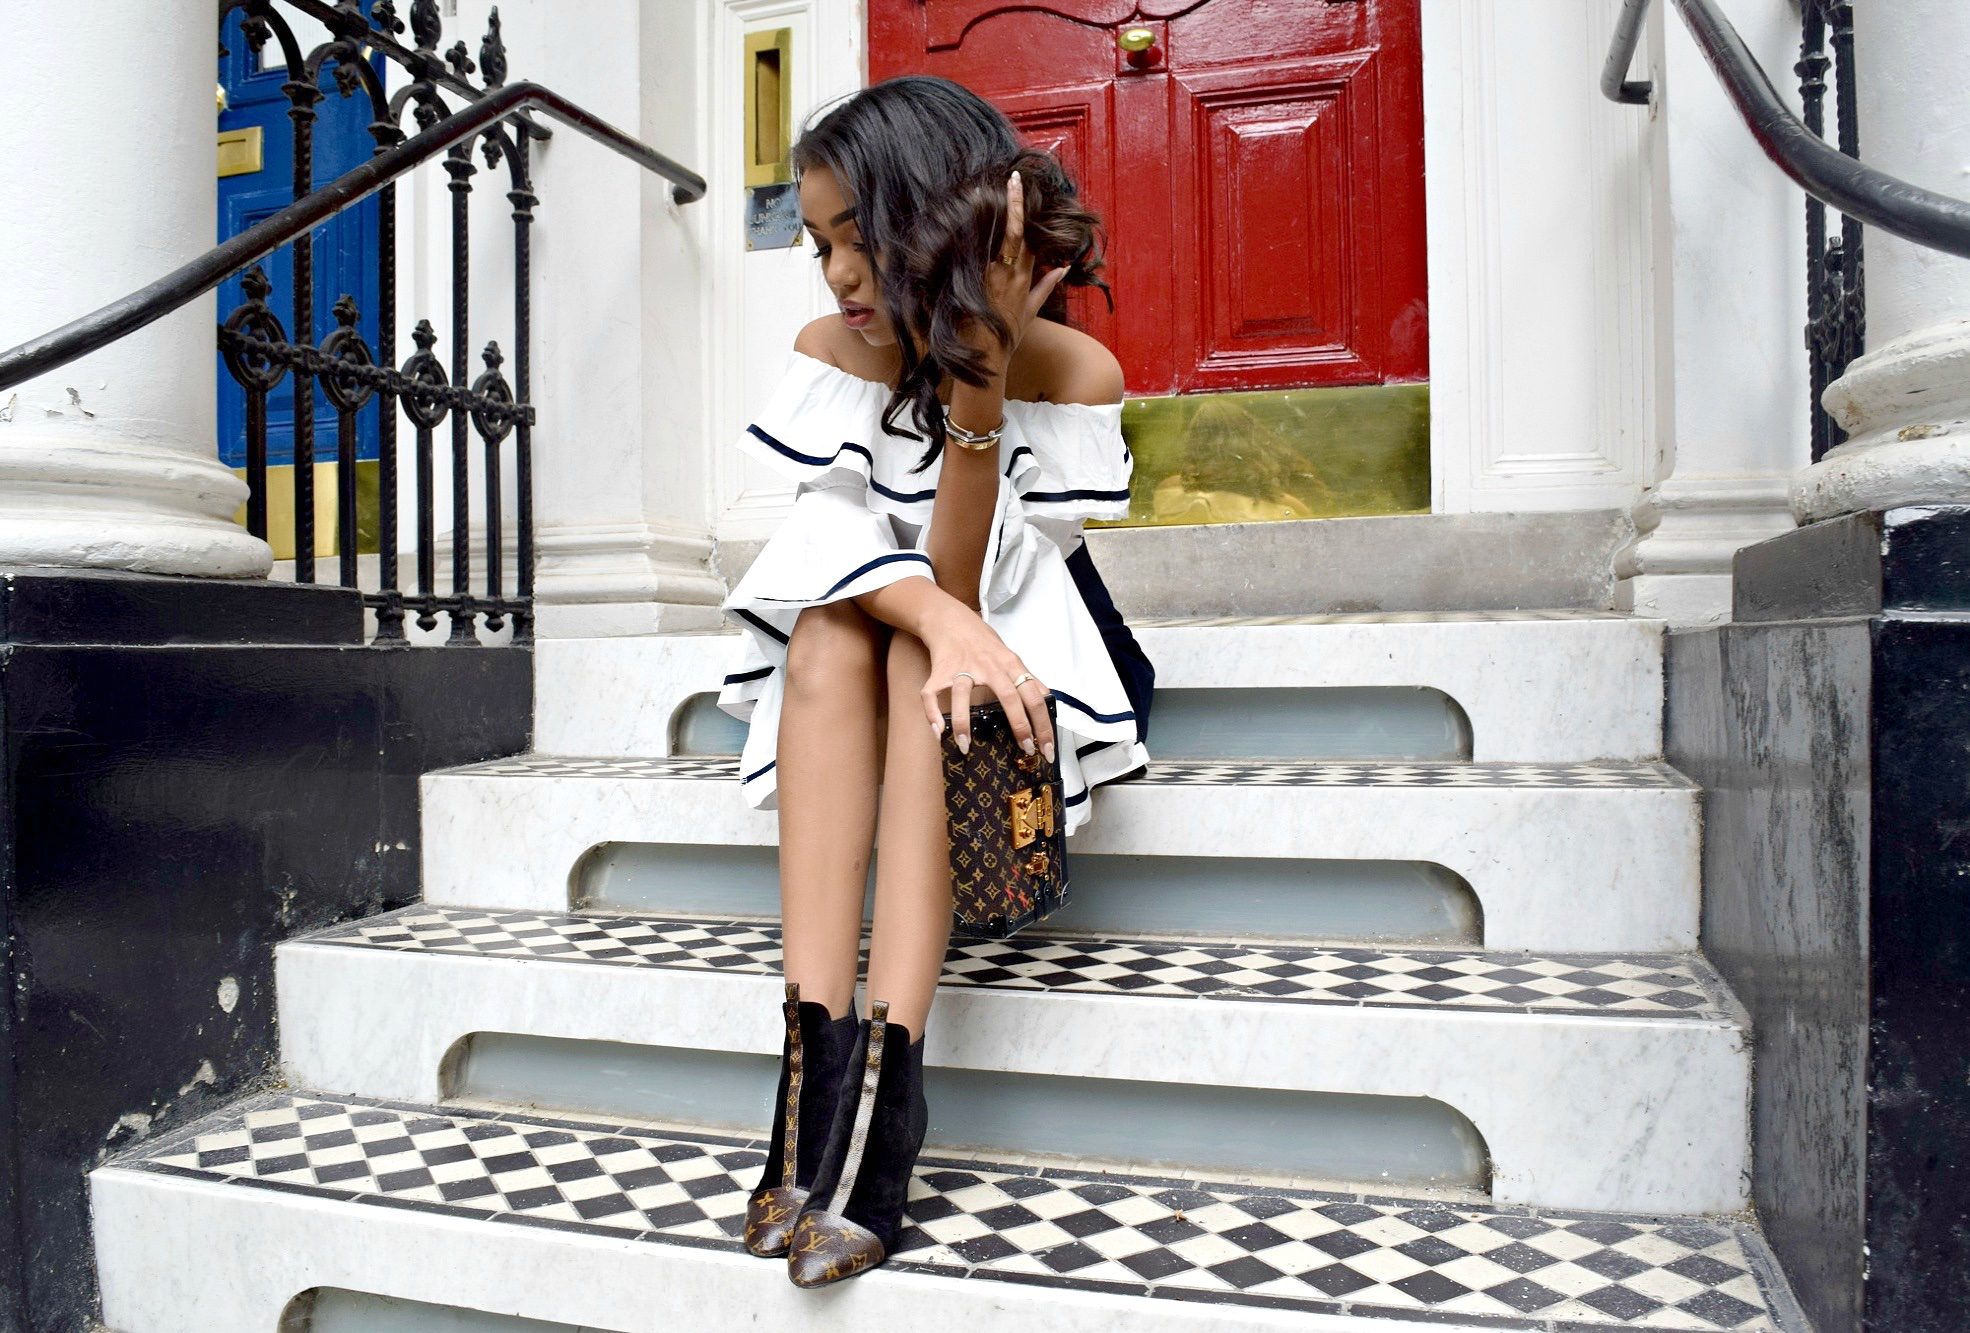 All In Love In All LV // Storets off the shoulder Blouse and Navy Wrap Skirt // Louis Vuitton Petit Malle Bag and Monogram Ankle Booties // London England Europe Travel Diary // Los Angeles Fashion Blogger Daphne Blunt: To Style, With Love